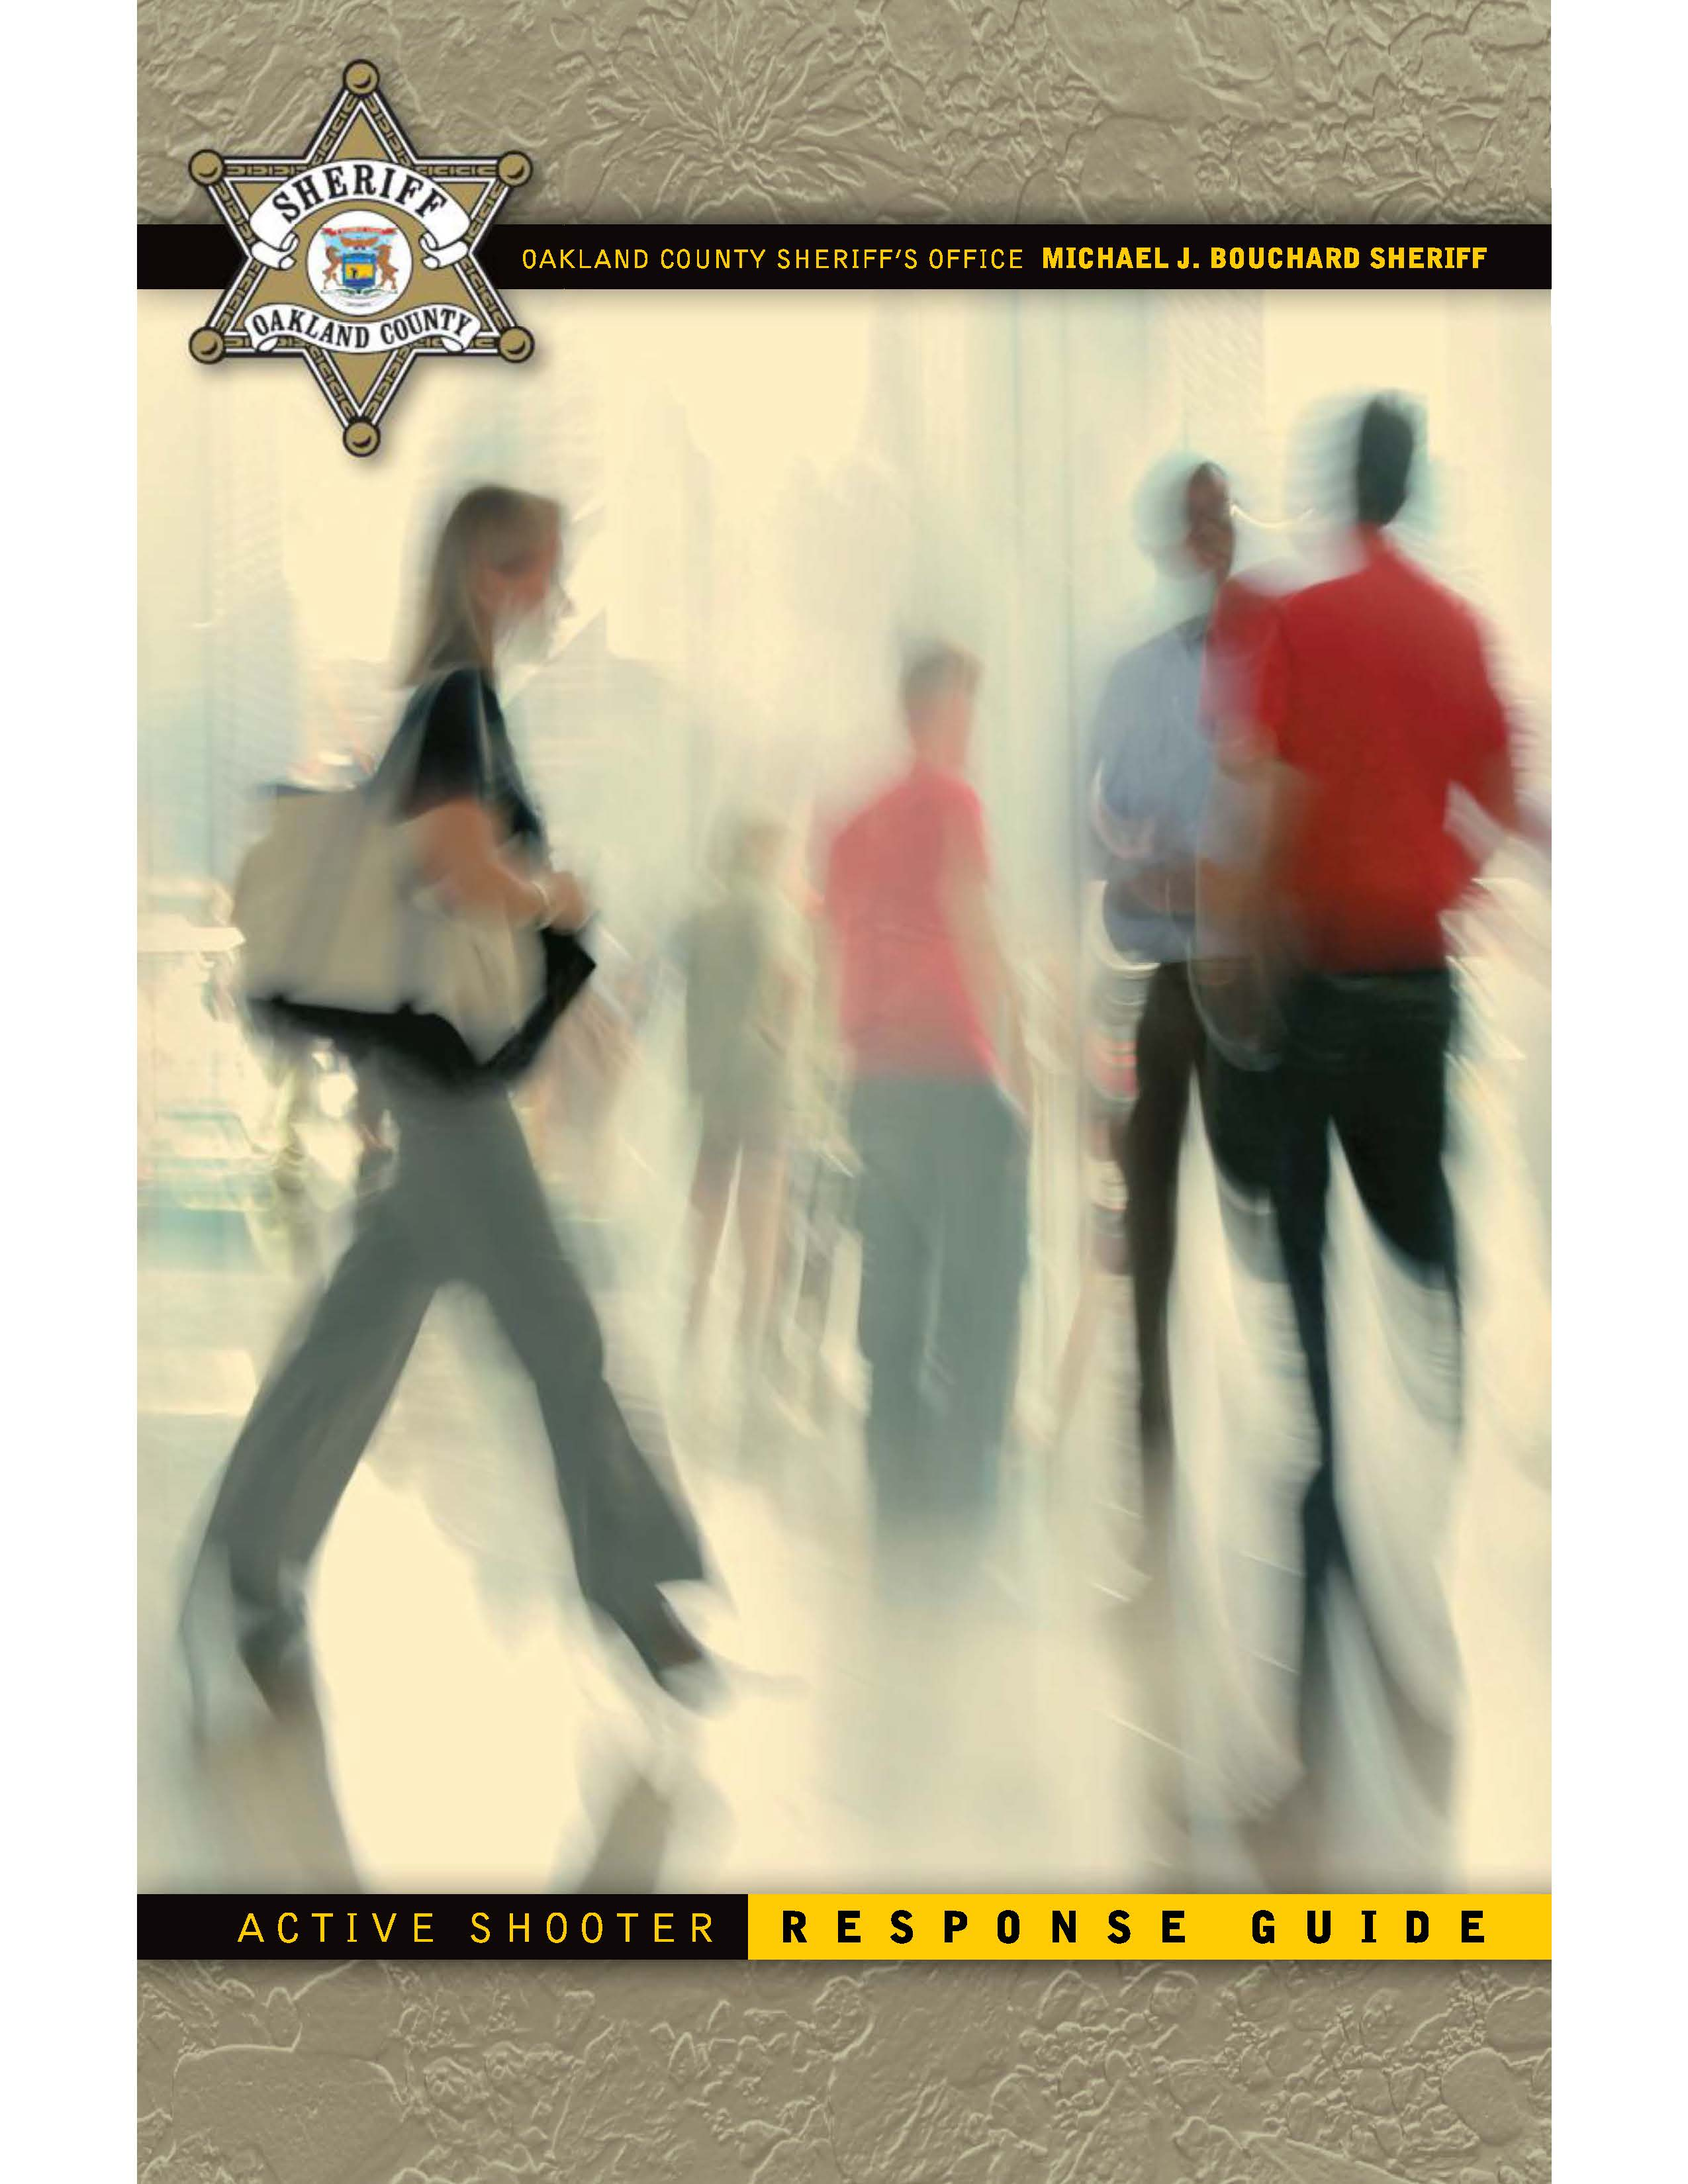 Active Shooter Response Guide Cover Opens in new window